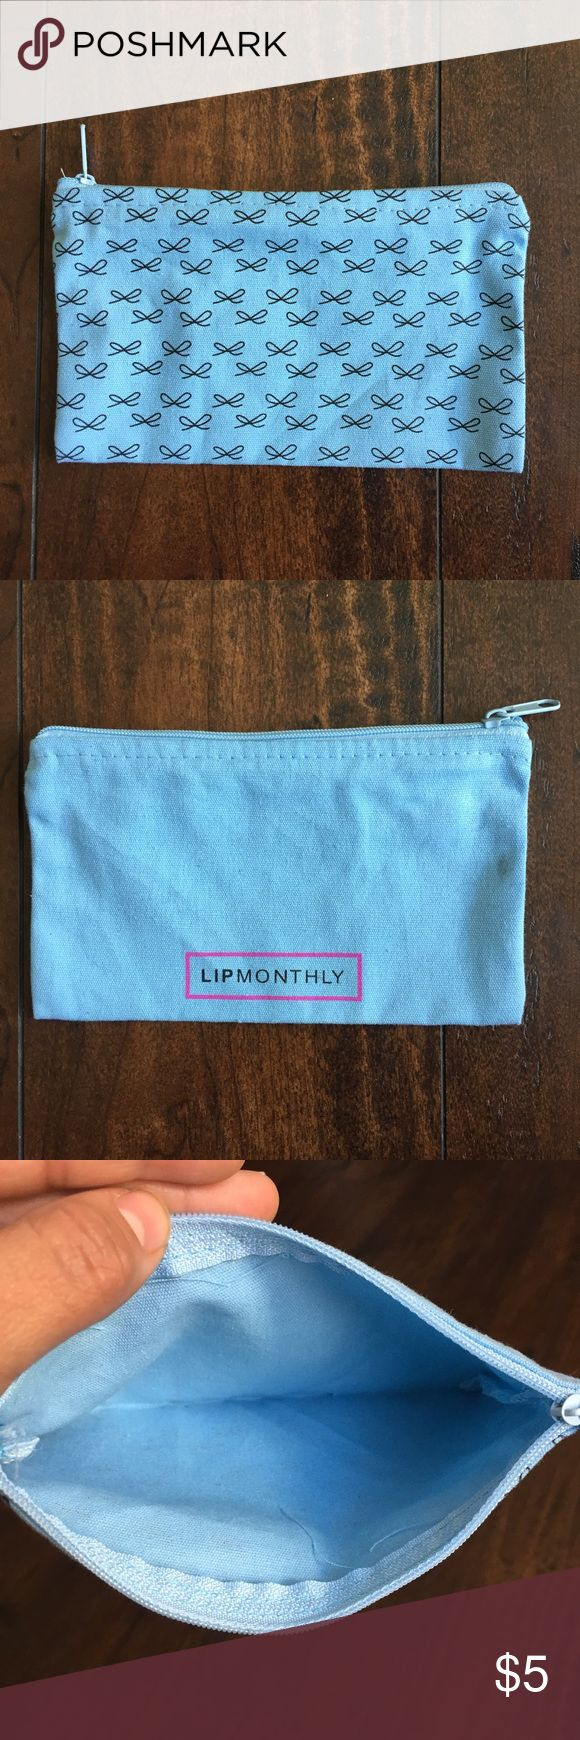 🆕NWOT Blue lipstick bag 🆕NWOT  New without tags  Cute bow details  Sky blue color  Never used  Excellent condition Other makeup bags available in my closet, bundle for a better deal! ✅Make an offer ✅Bundle and save  🛍Happy Shopping! Bags Cosmetic Bags & Cases